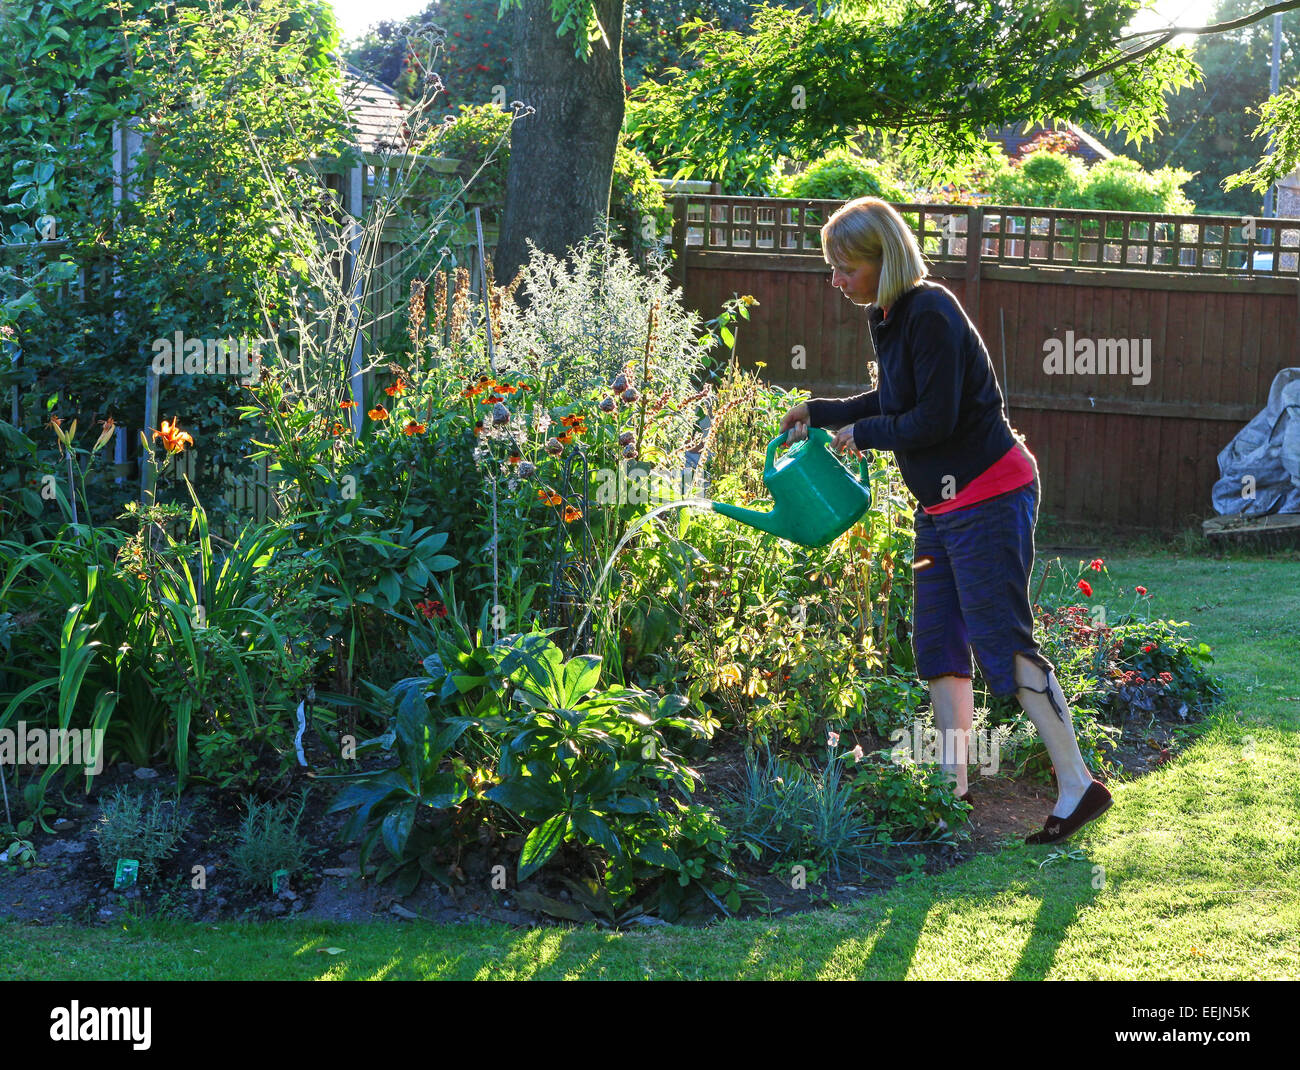 a-woman-watering-her-garden-with-a-water